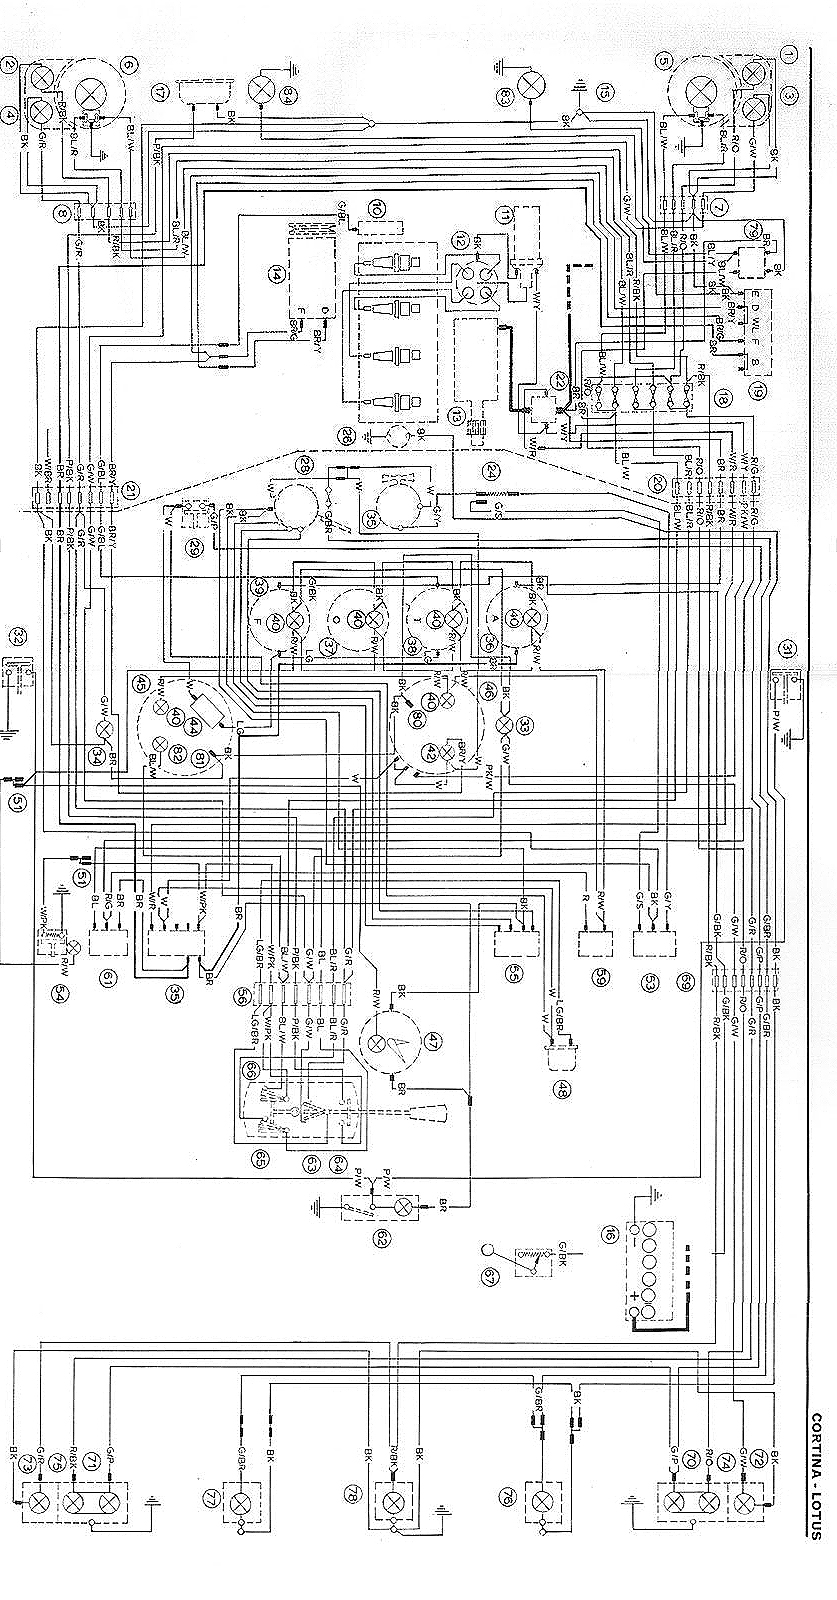 Ford Escort Zx2 Wiring Diagram | Wiring Liry on mahindra 4025 tractor wiring diagram, mahindra joystick control valves, mahindra tractor schematic, mahindra power steering parts, mahindra tractor parts diagram, tractor hydraulic system diagram, ford tractor power steering diagram, mahindra 6530 tractor data, mahindra tractor gear housing diagrams, mahindra tractor battery replacements, 445 ford tractor pto diagram, ford tractor steering column diagram,